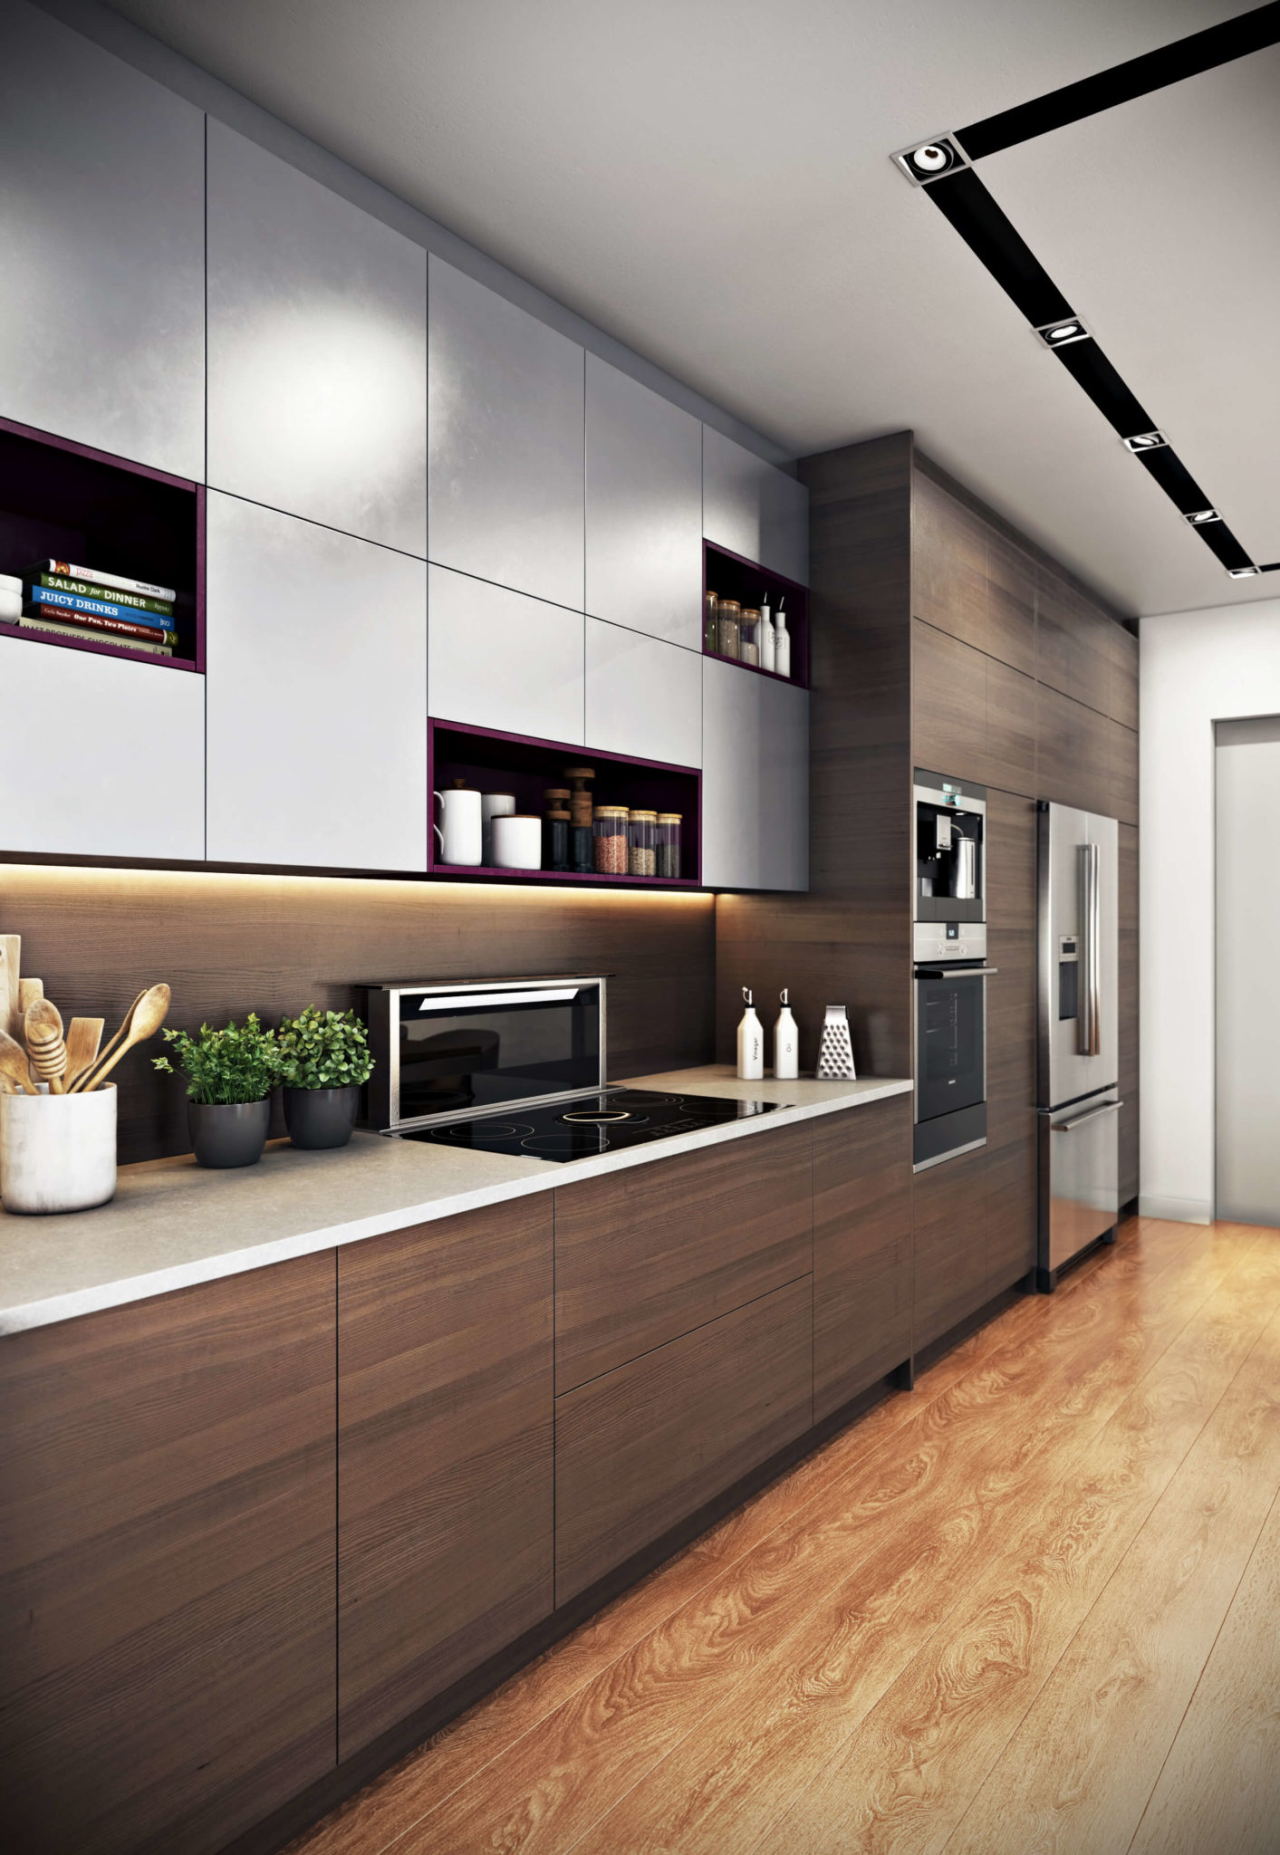 Home interior design kitchen for ultimate sophistication for New dizain home